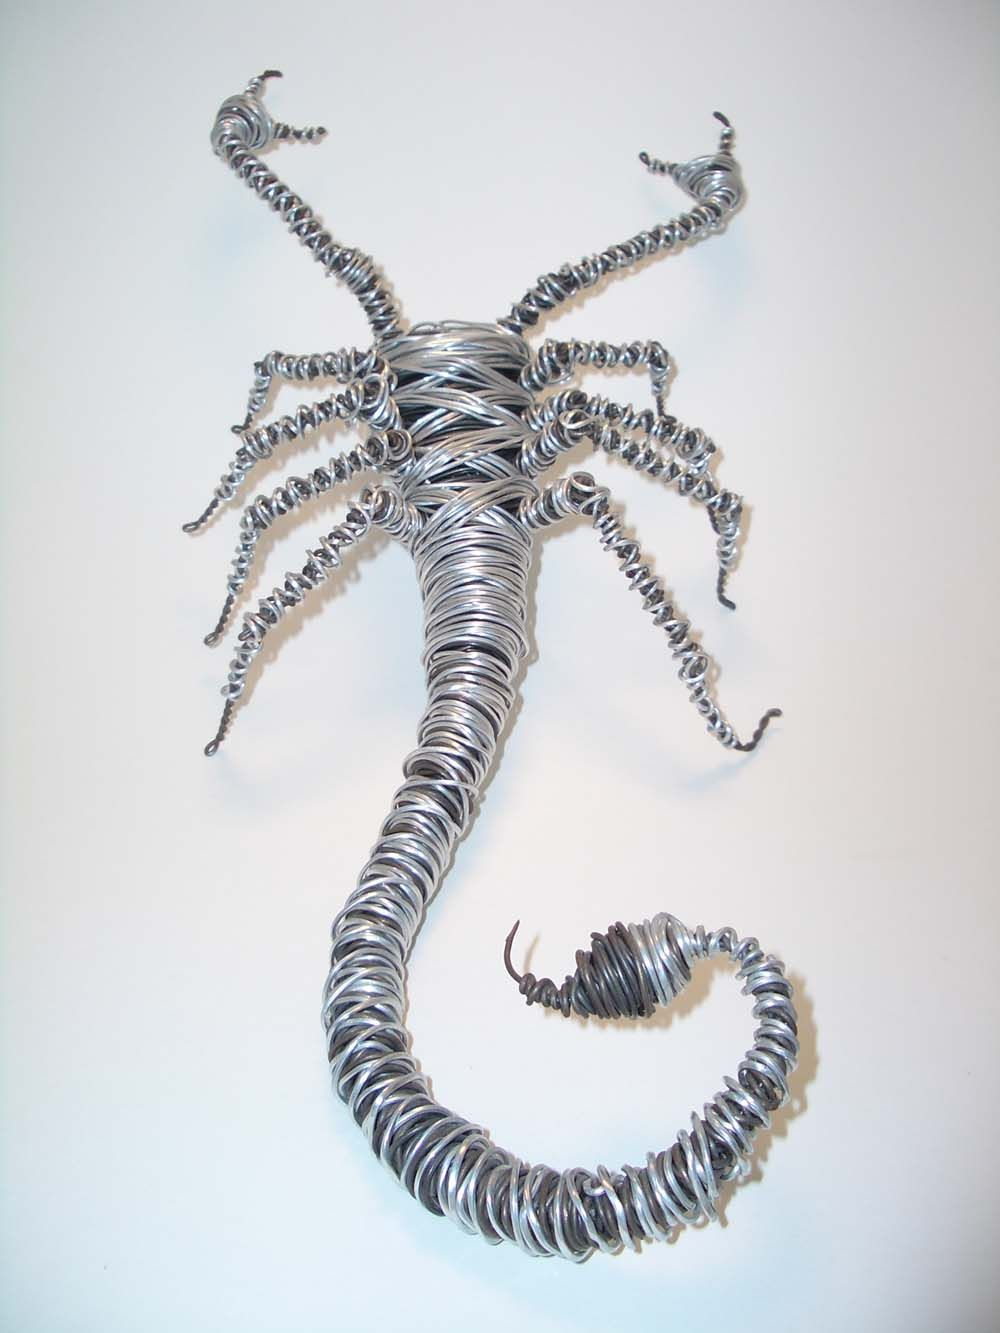 Wire Sculpting | Wire Sculpture by Nic Carbone | Art | Pinterest ...